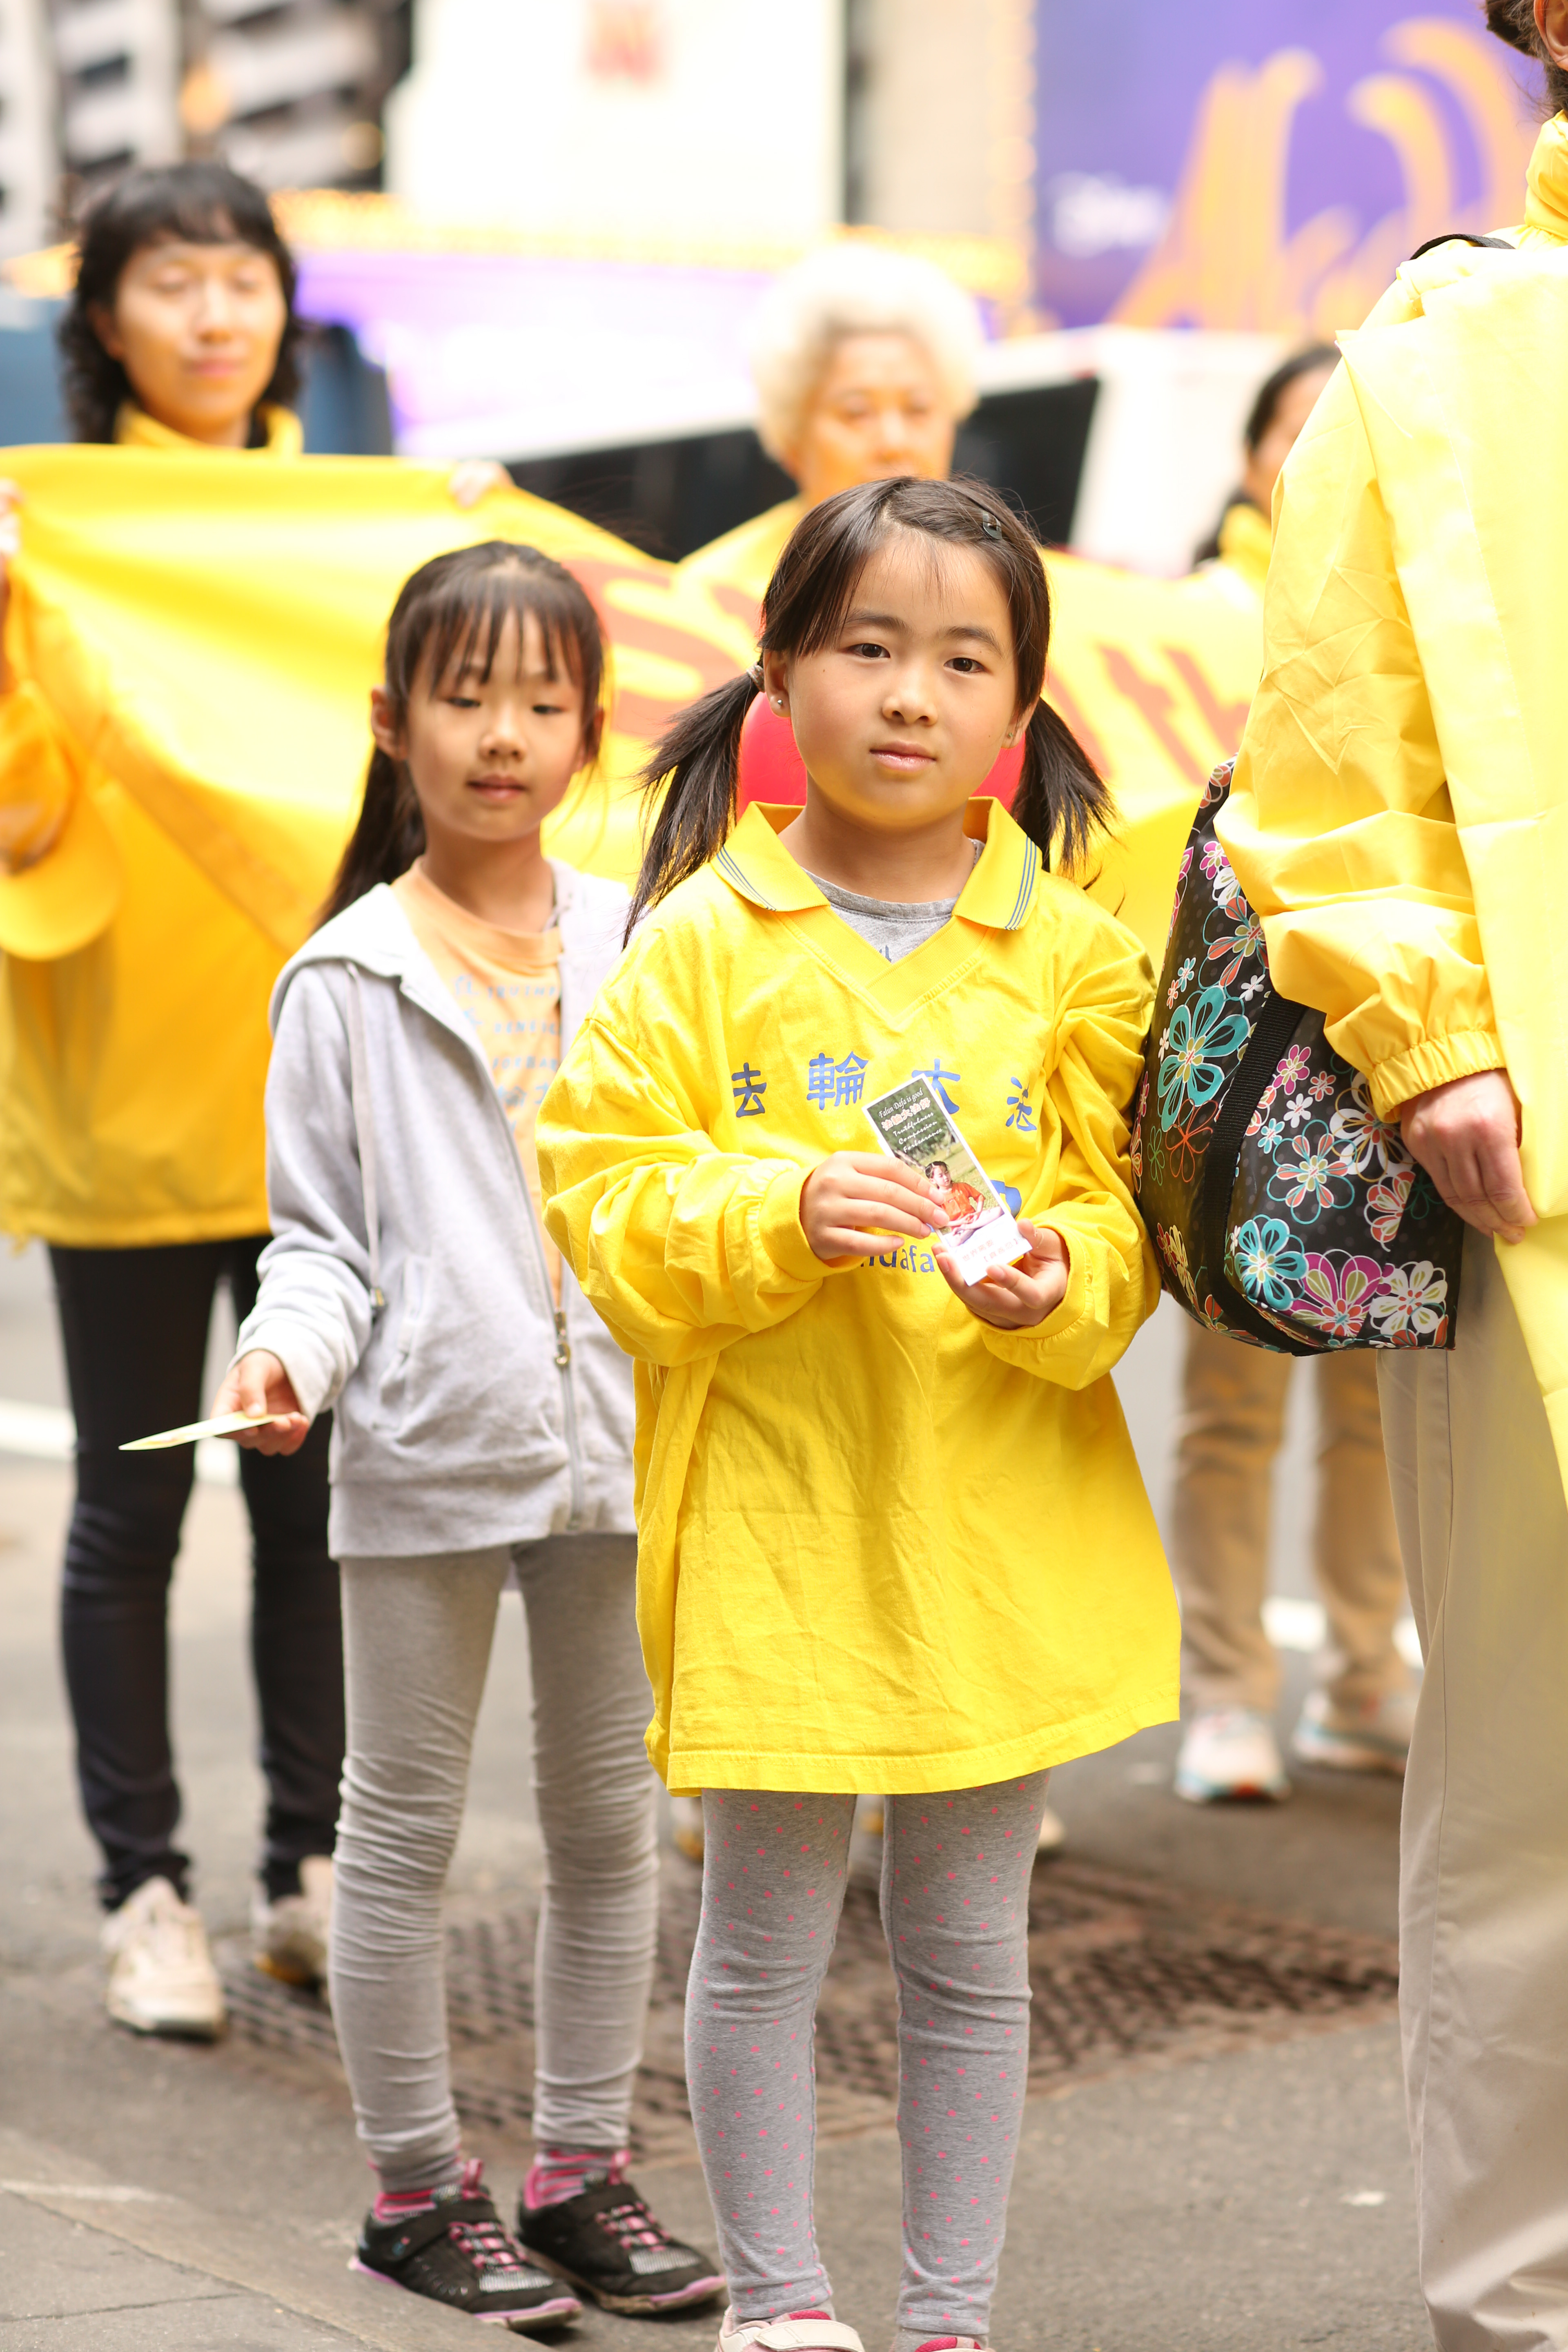 Around 10,000 Falun Gong practitioners march in the World Falun Dafa parade in New York on May 13, 2016. (Benjamin Chasteen/Epoch Times)